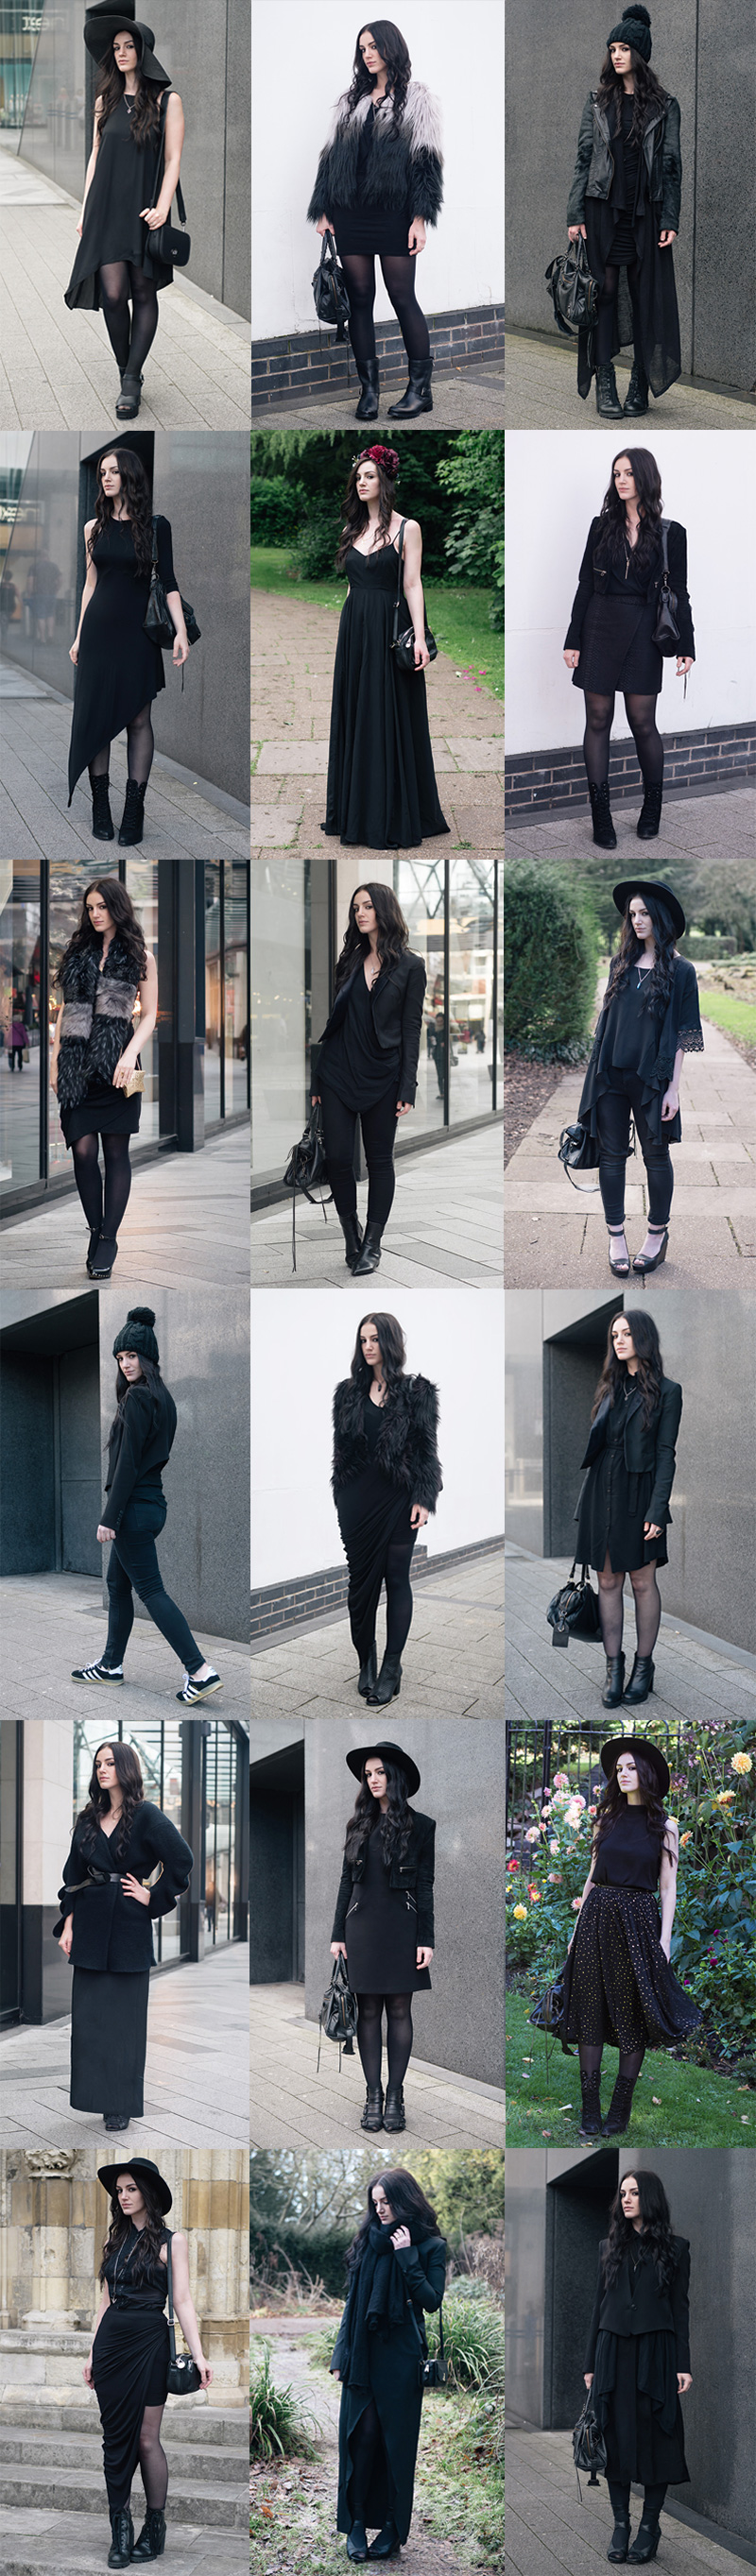 Fashion blogger Stephanie of FAIIINT all black everything best of 2015 dark goth street style outfits compilation.